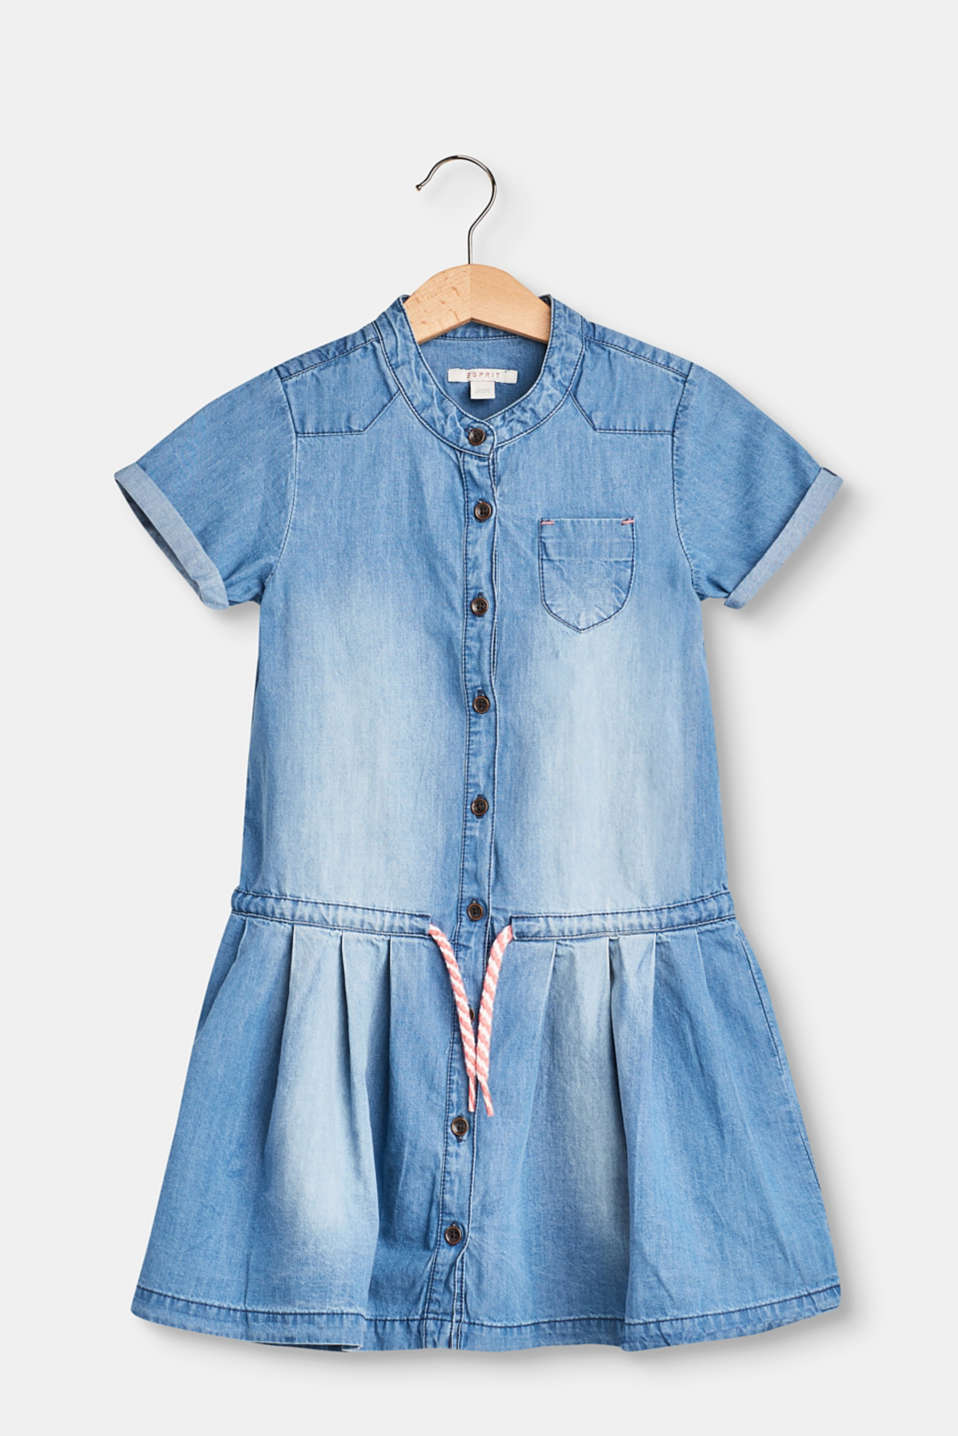 Esprit - Lightweight denim dress in 100% cotton